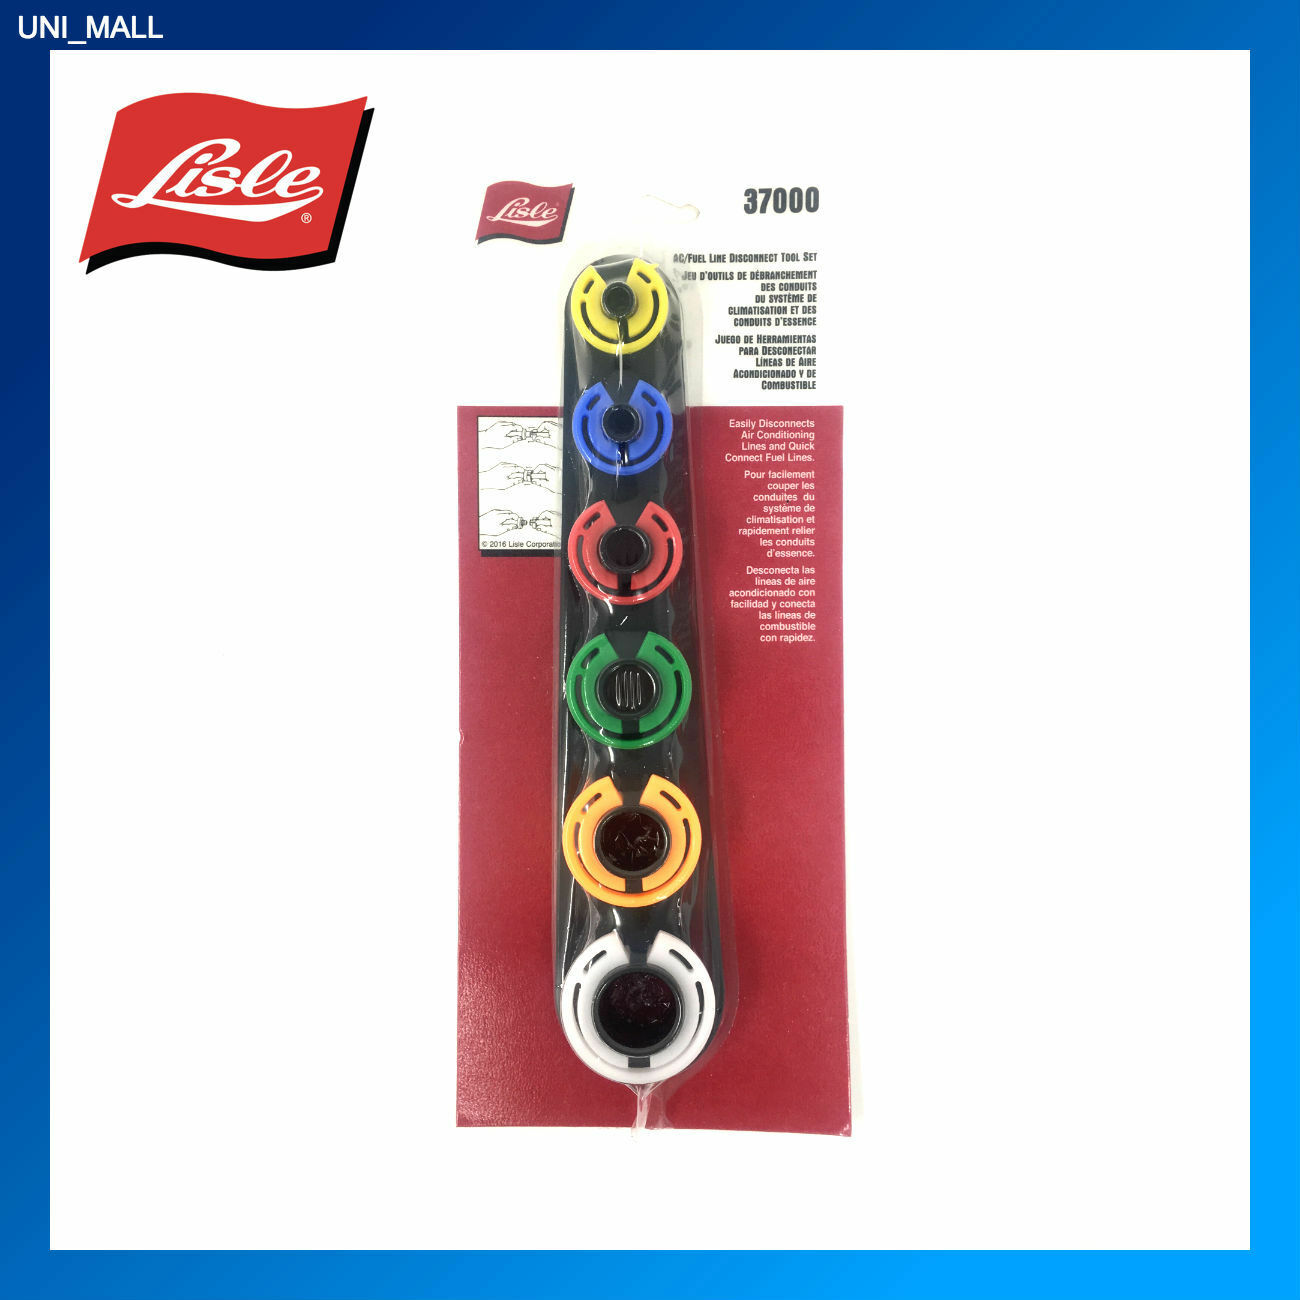 Lisle Tools New 37000 Air Conditioning/Fuel Line Disconnect Tool Set Made in USA